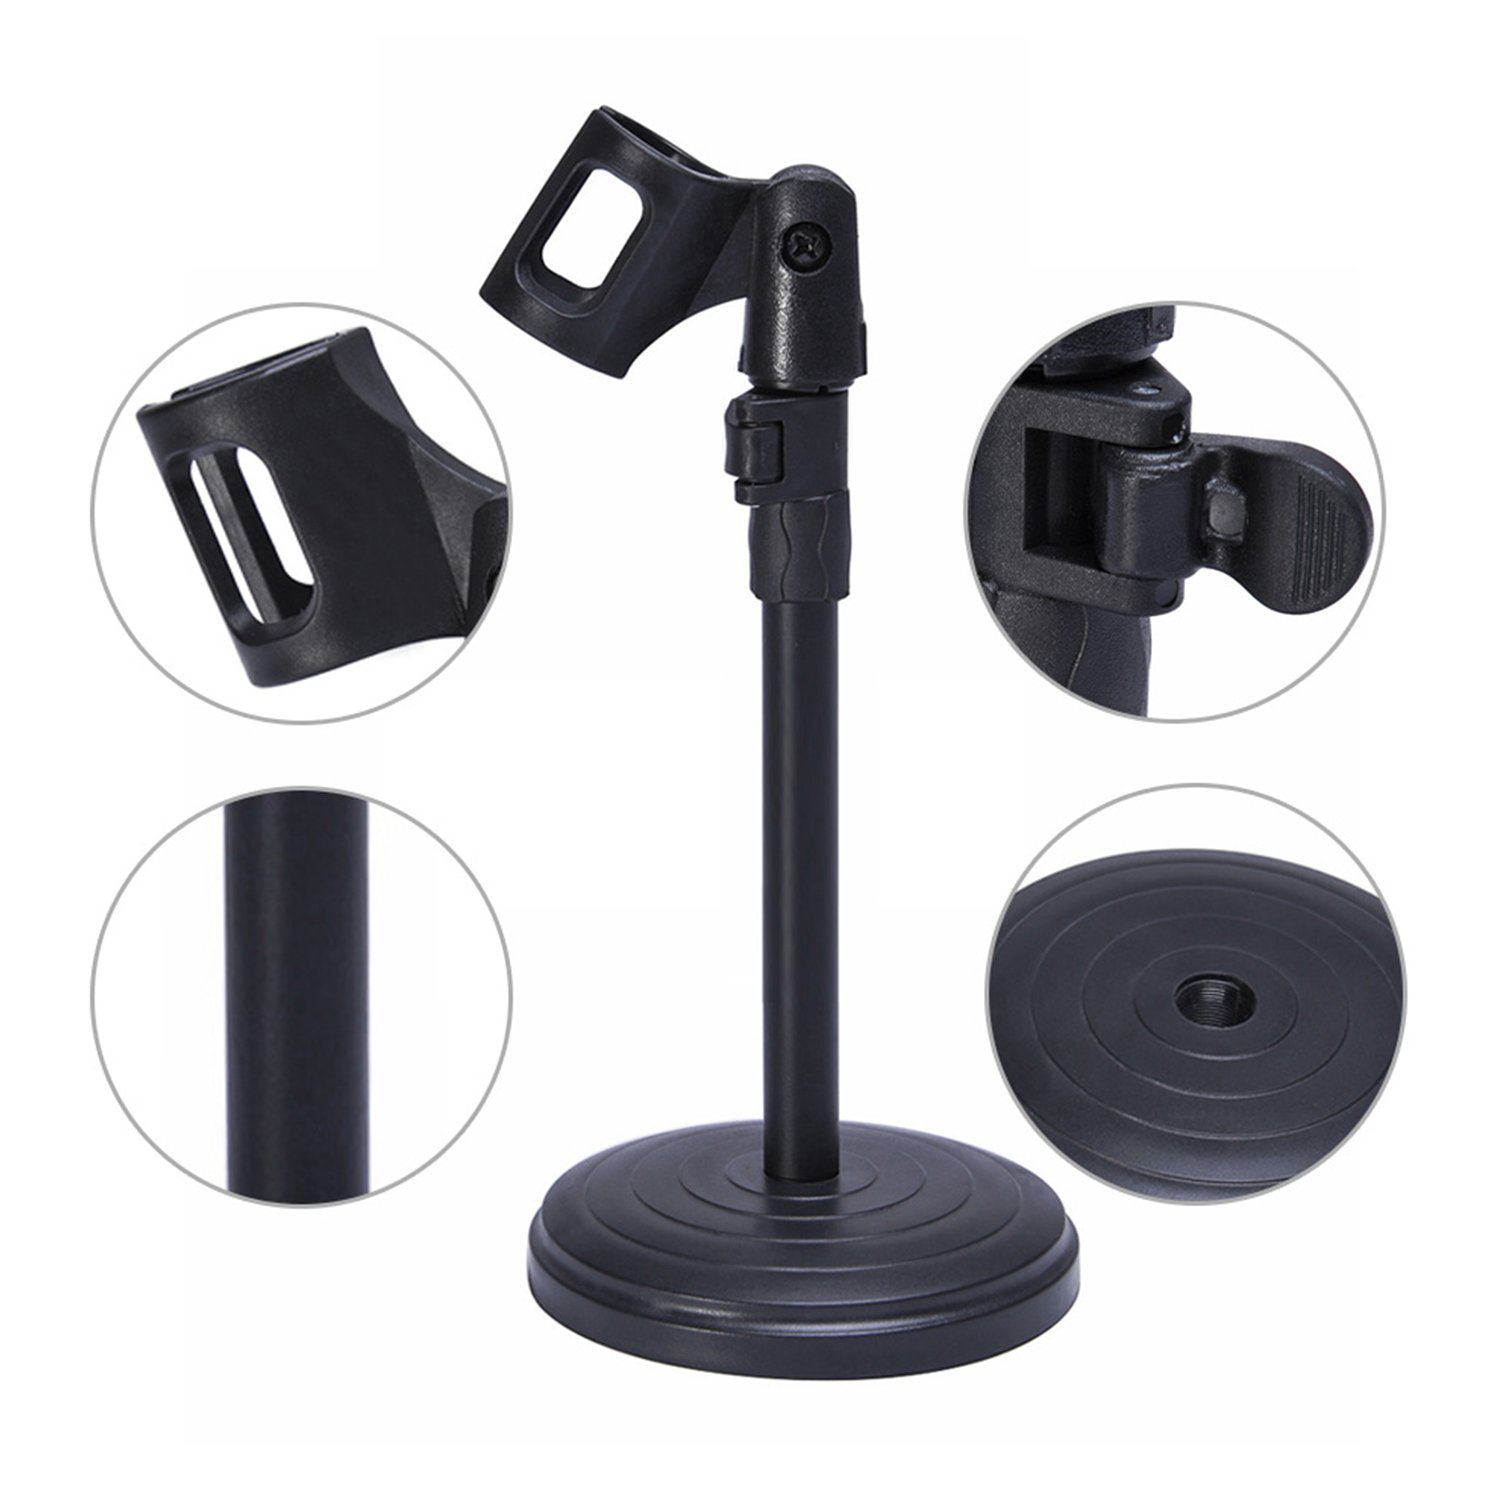 Mudder Adjustable Foldable Desk Microphone Stand With Mic Clip For Holder Recording Meetings Lectures And Podcasts Studio Equipment Musical Instruments Tibs